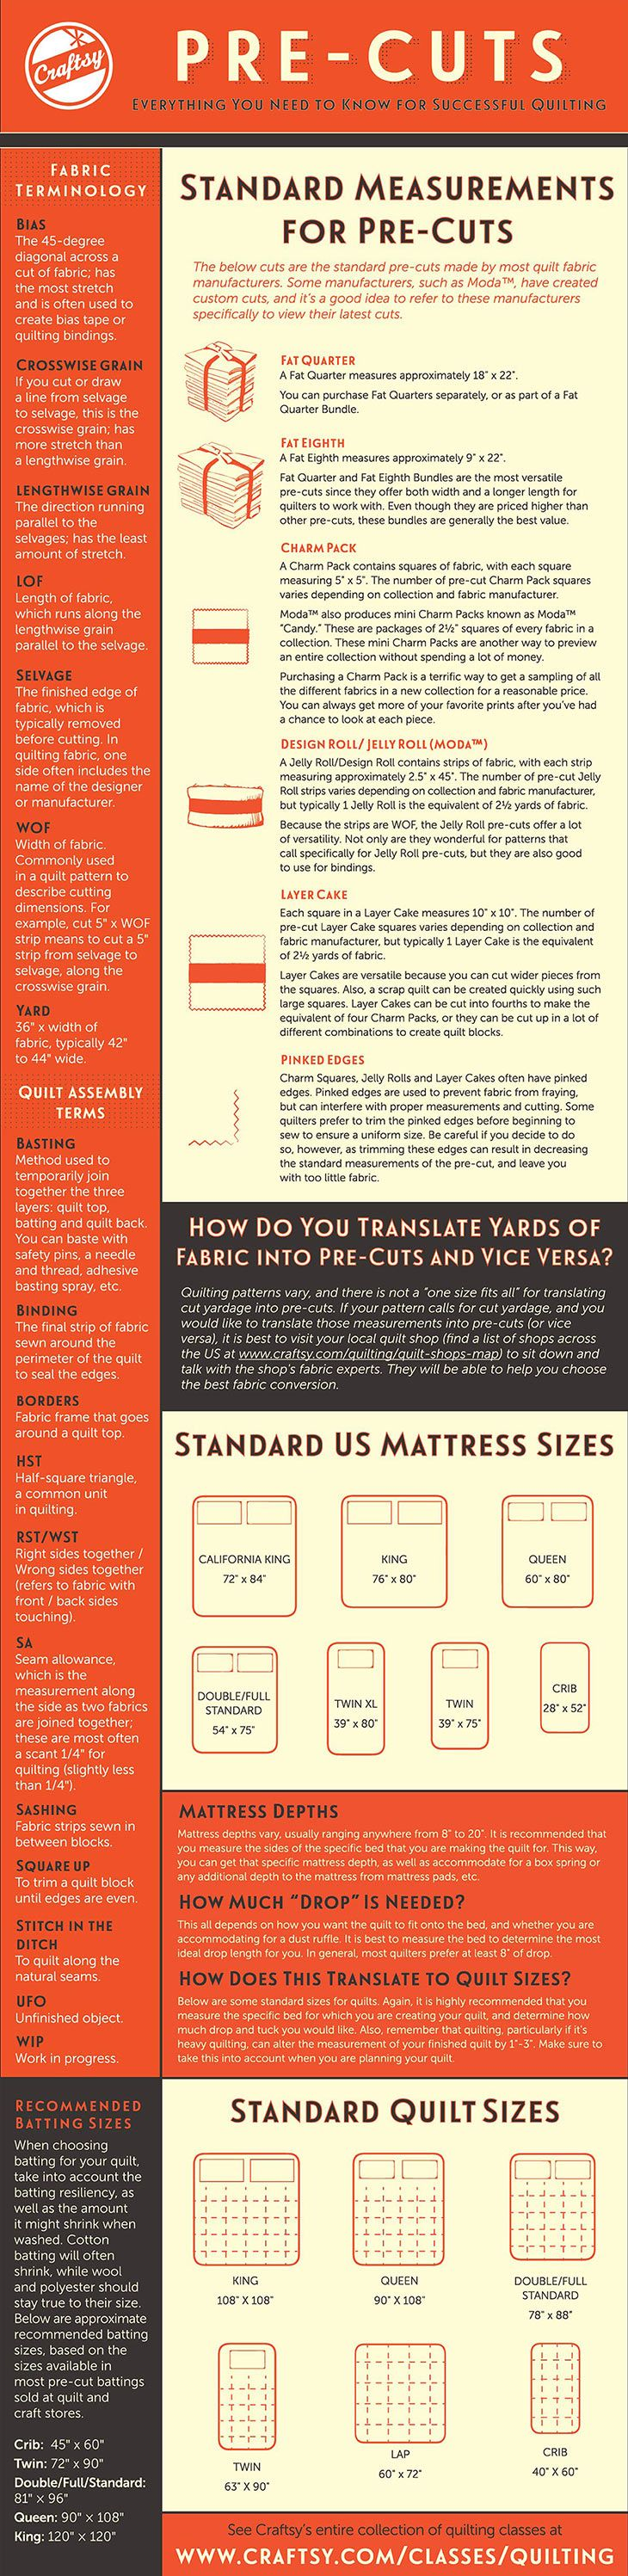 pre-cut fabric measurements & quilt sizes for all beds